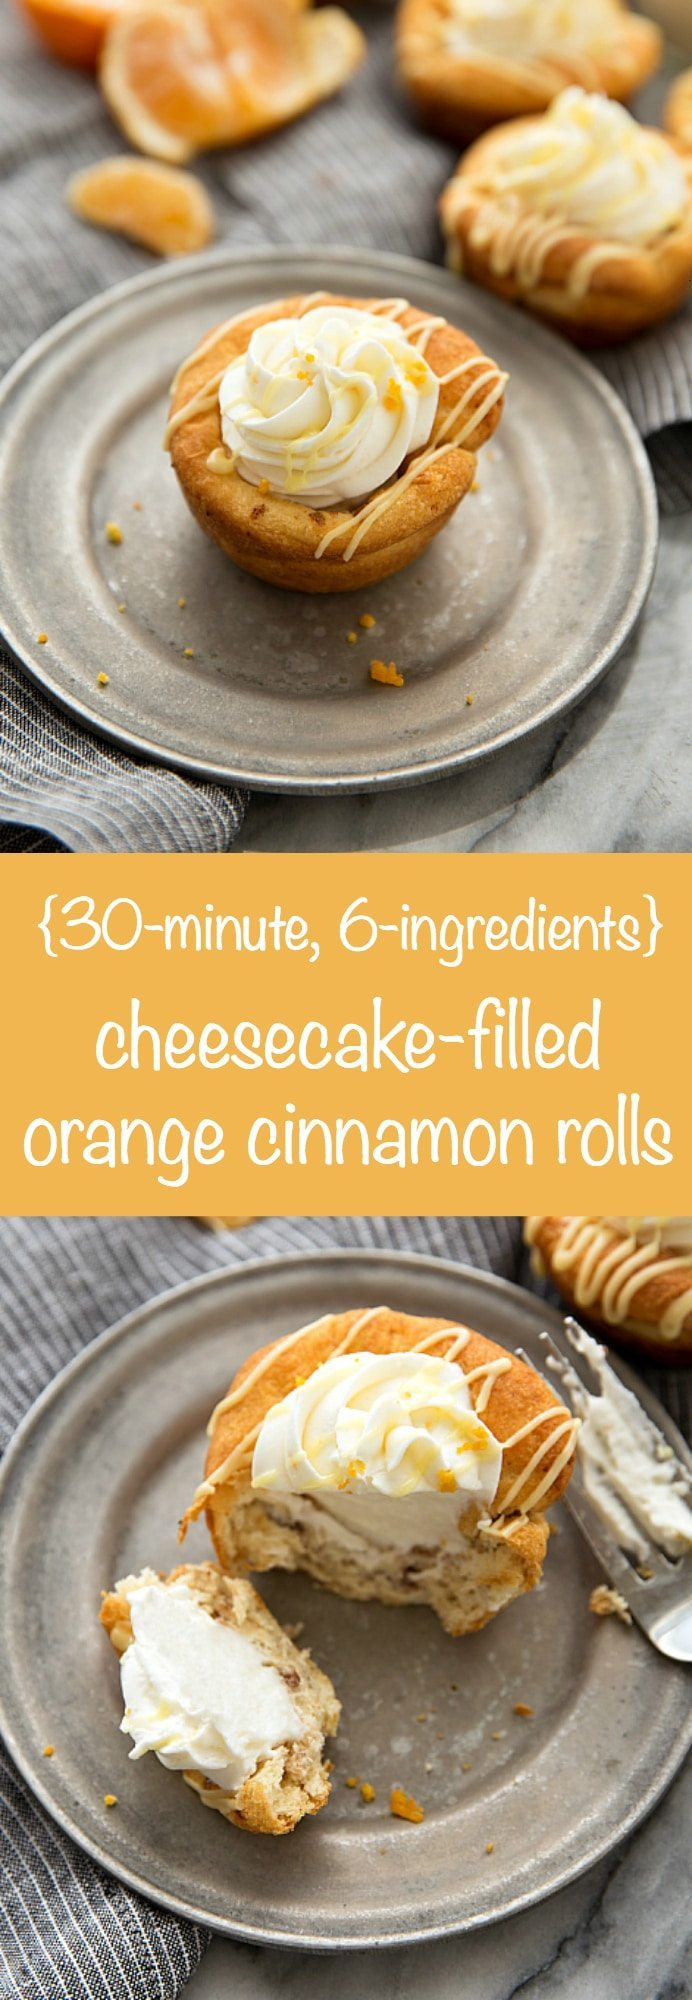 EASY 30-minute, 6-ingredients cheesecake stuffed orange cinnamon rolls